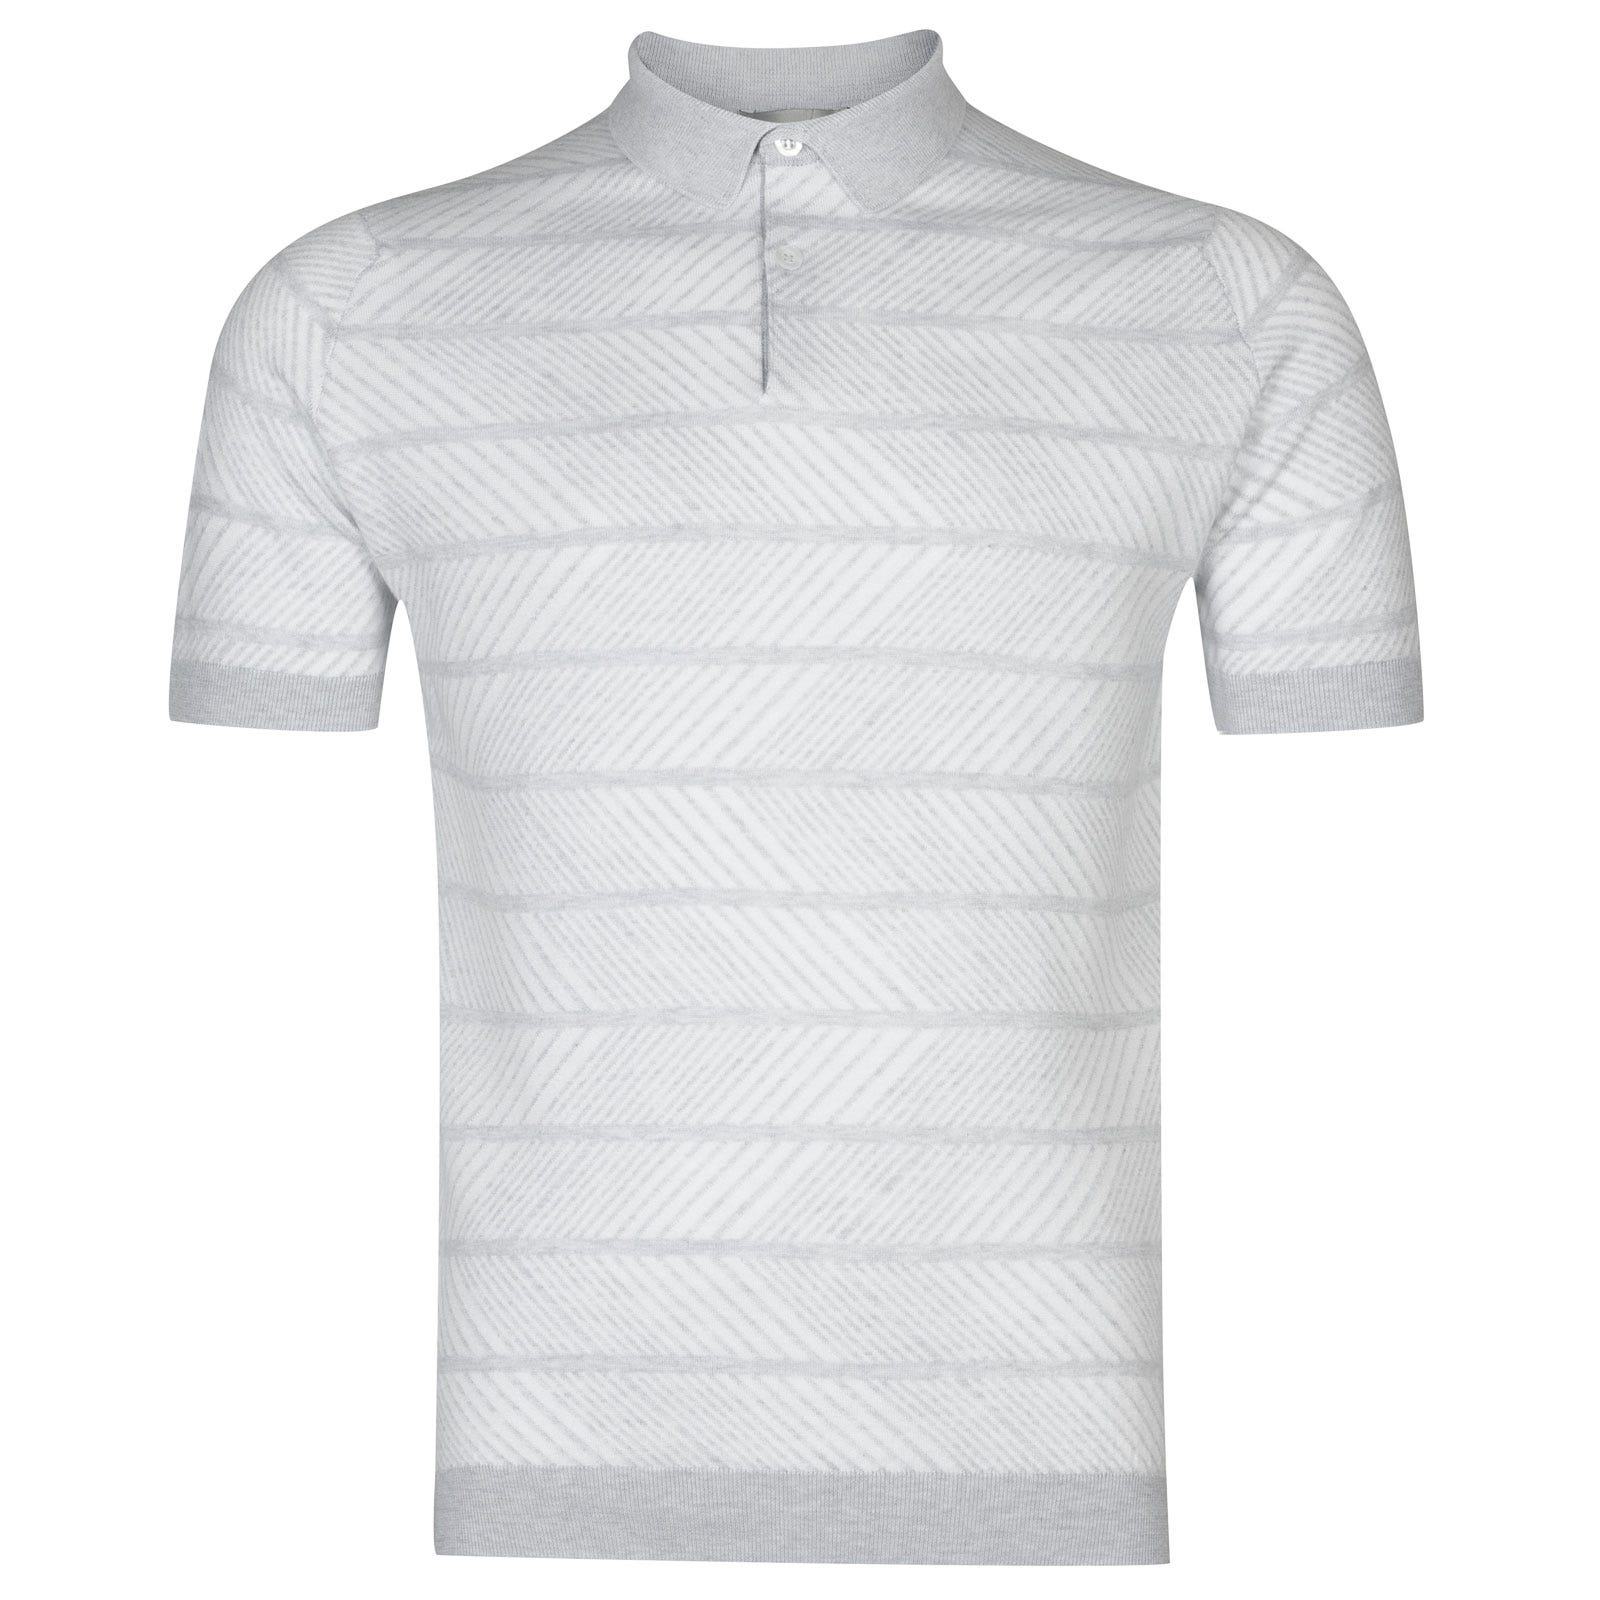 John Smedley Hermann in Feather Grey/White-Xl